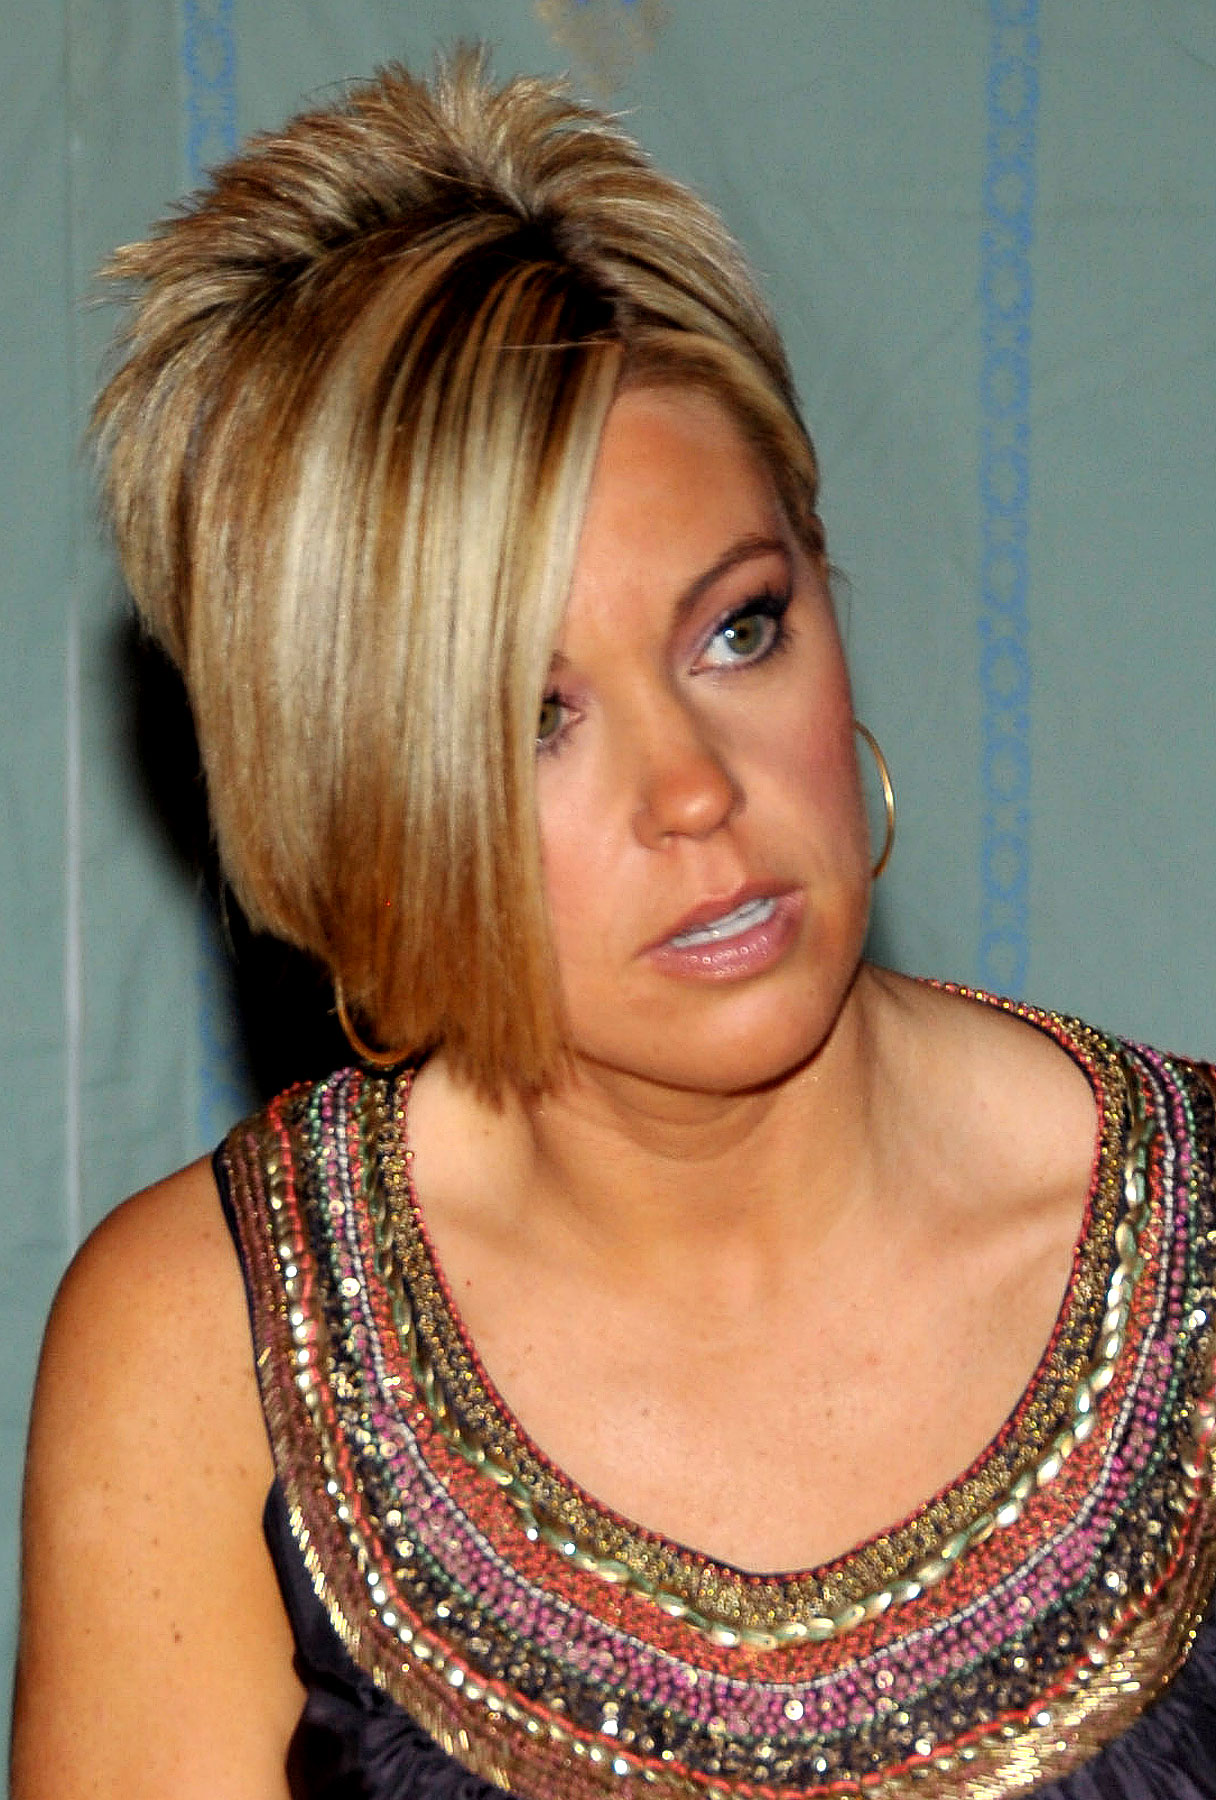 Kate Gosselin Won't Be Dating Anytime Soon